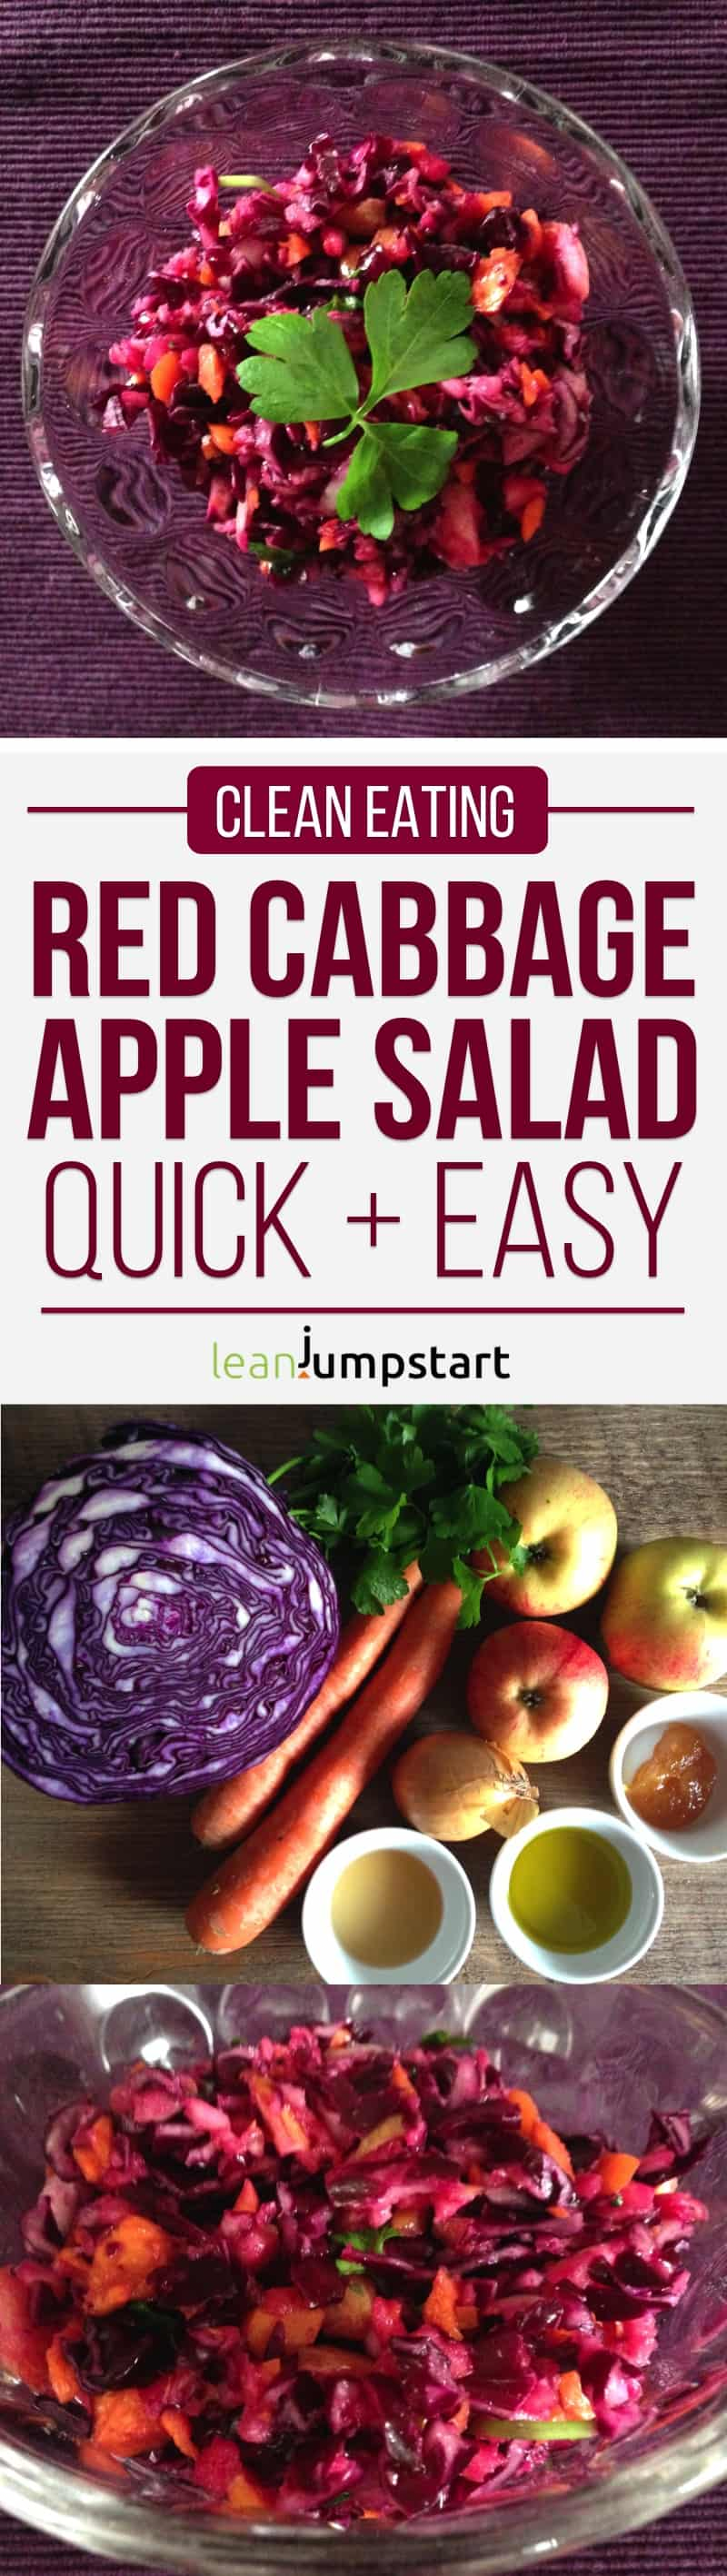 clean eating red cabbage salad recipe with apples - quick and easy